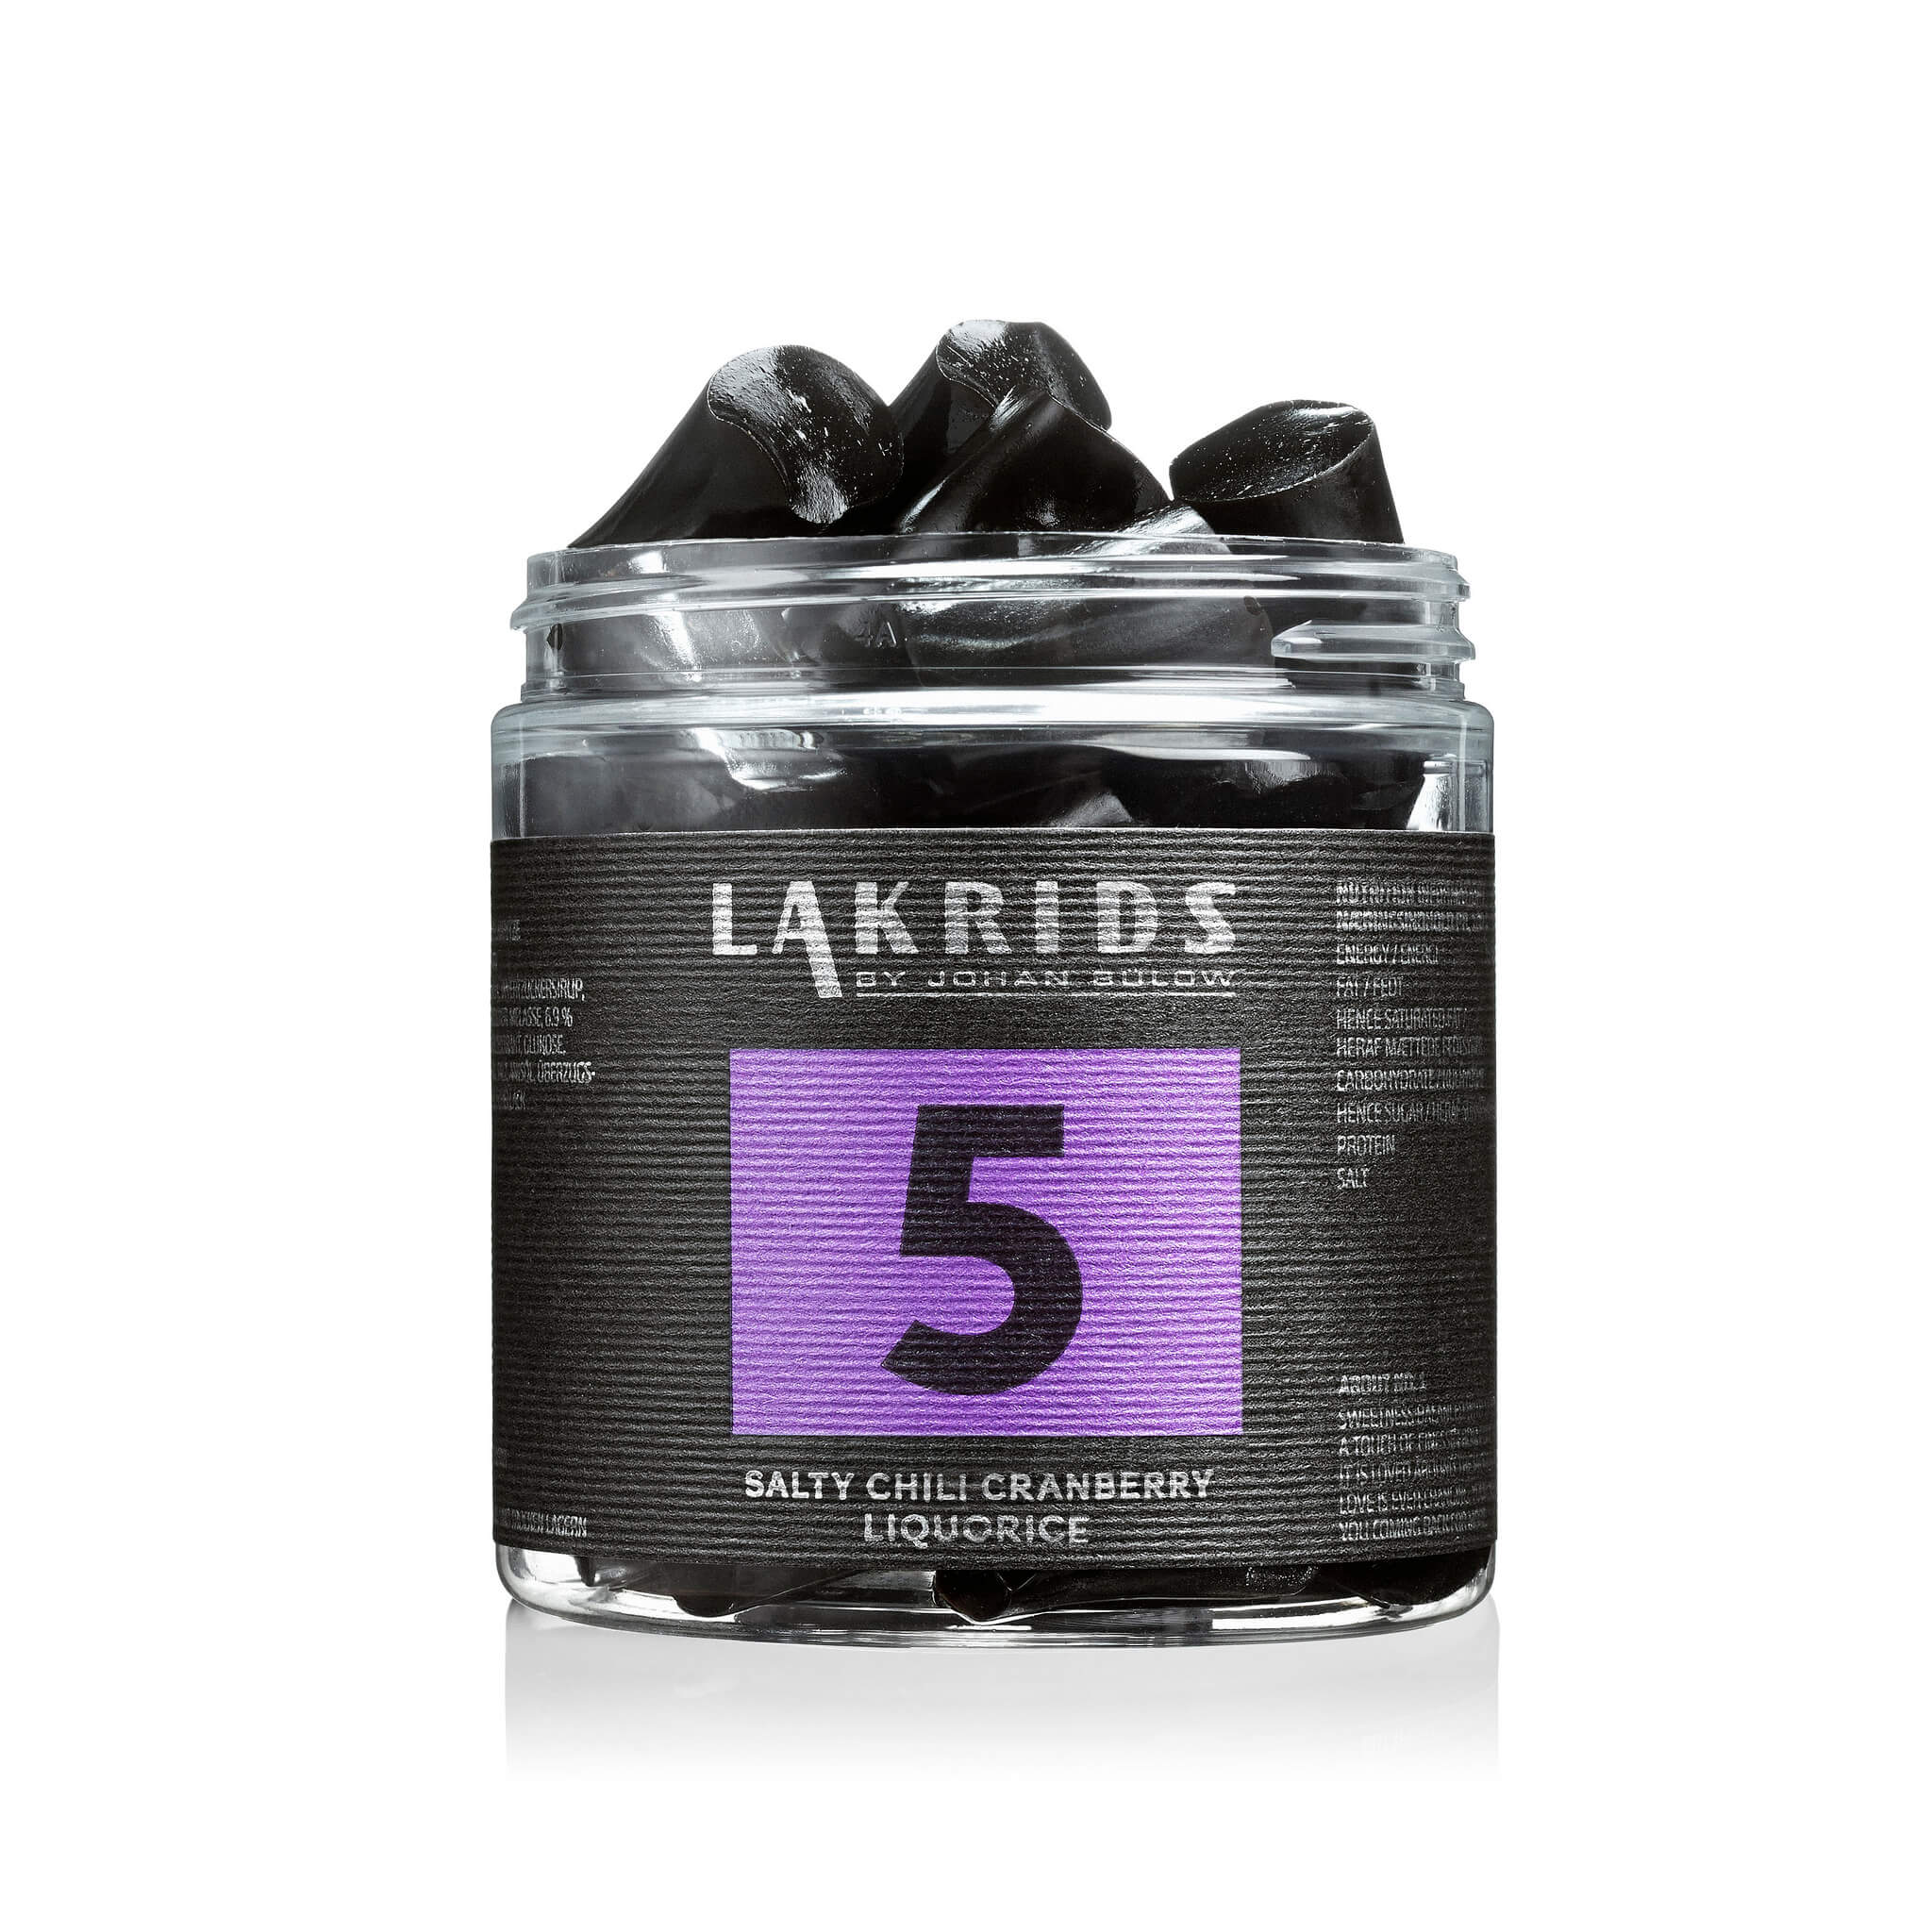 Lakrids – NO 5 Salty Chili Cranberry